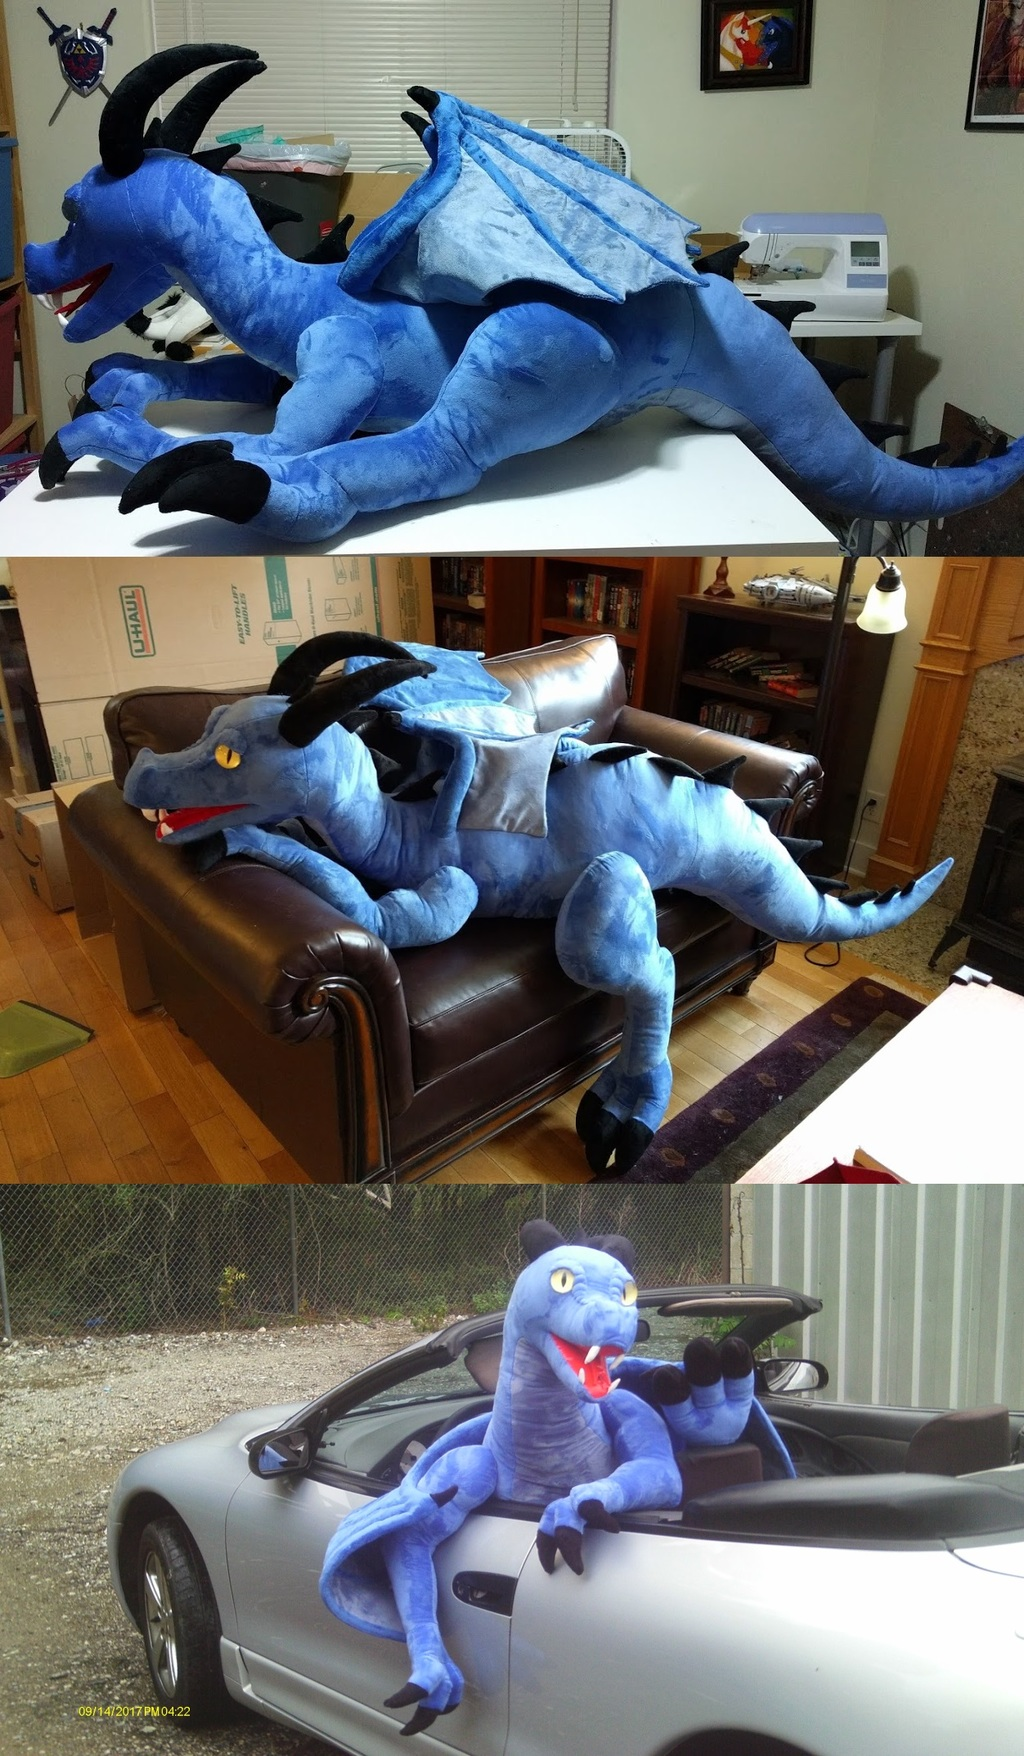 Most recent image: Giant blue dragon plush with joints.